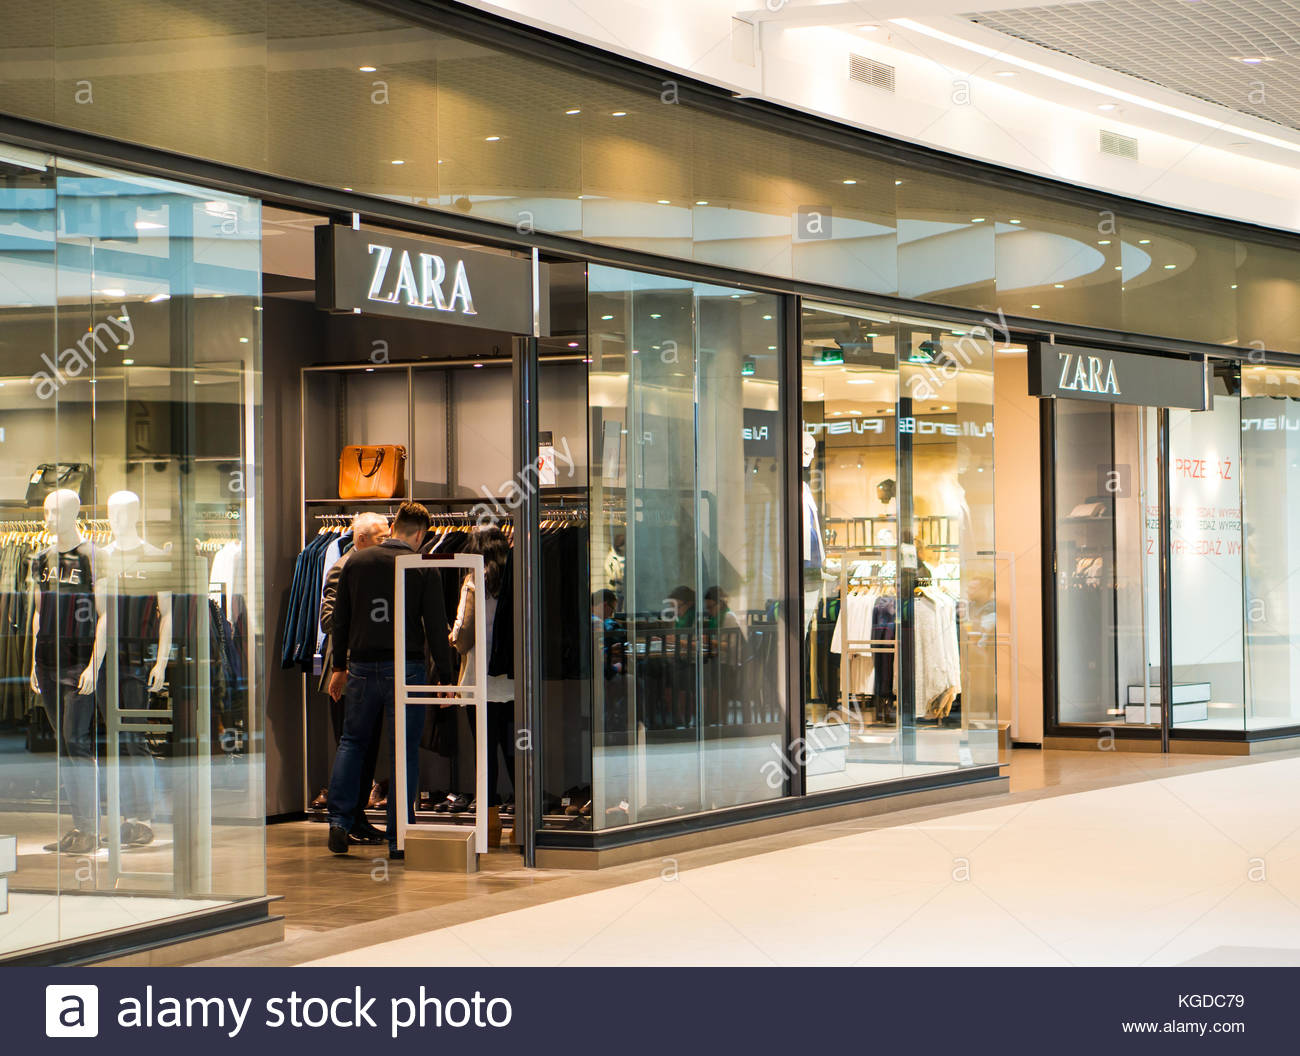 zara store entrance stock photos zara store entrance. Black Bedroom Furniture Sets. Home Design Ideas